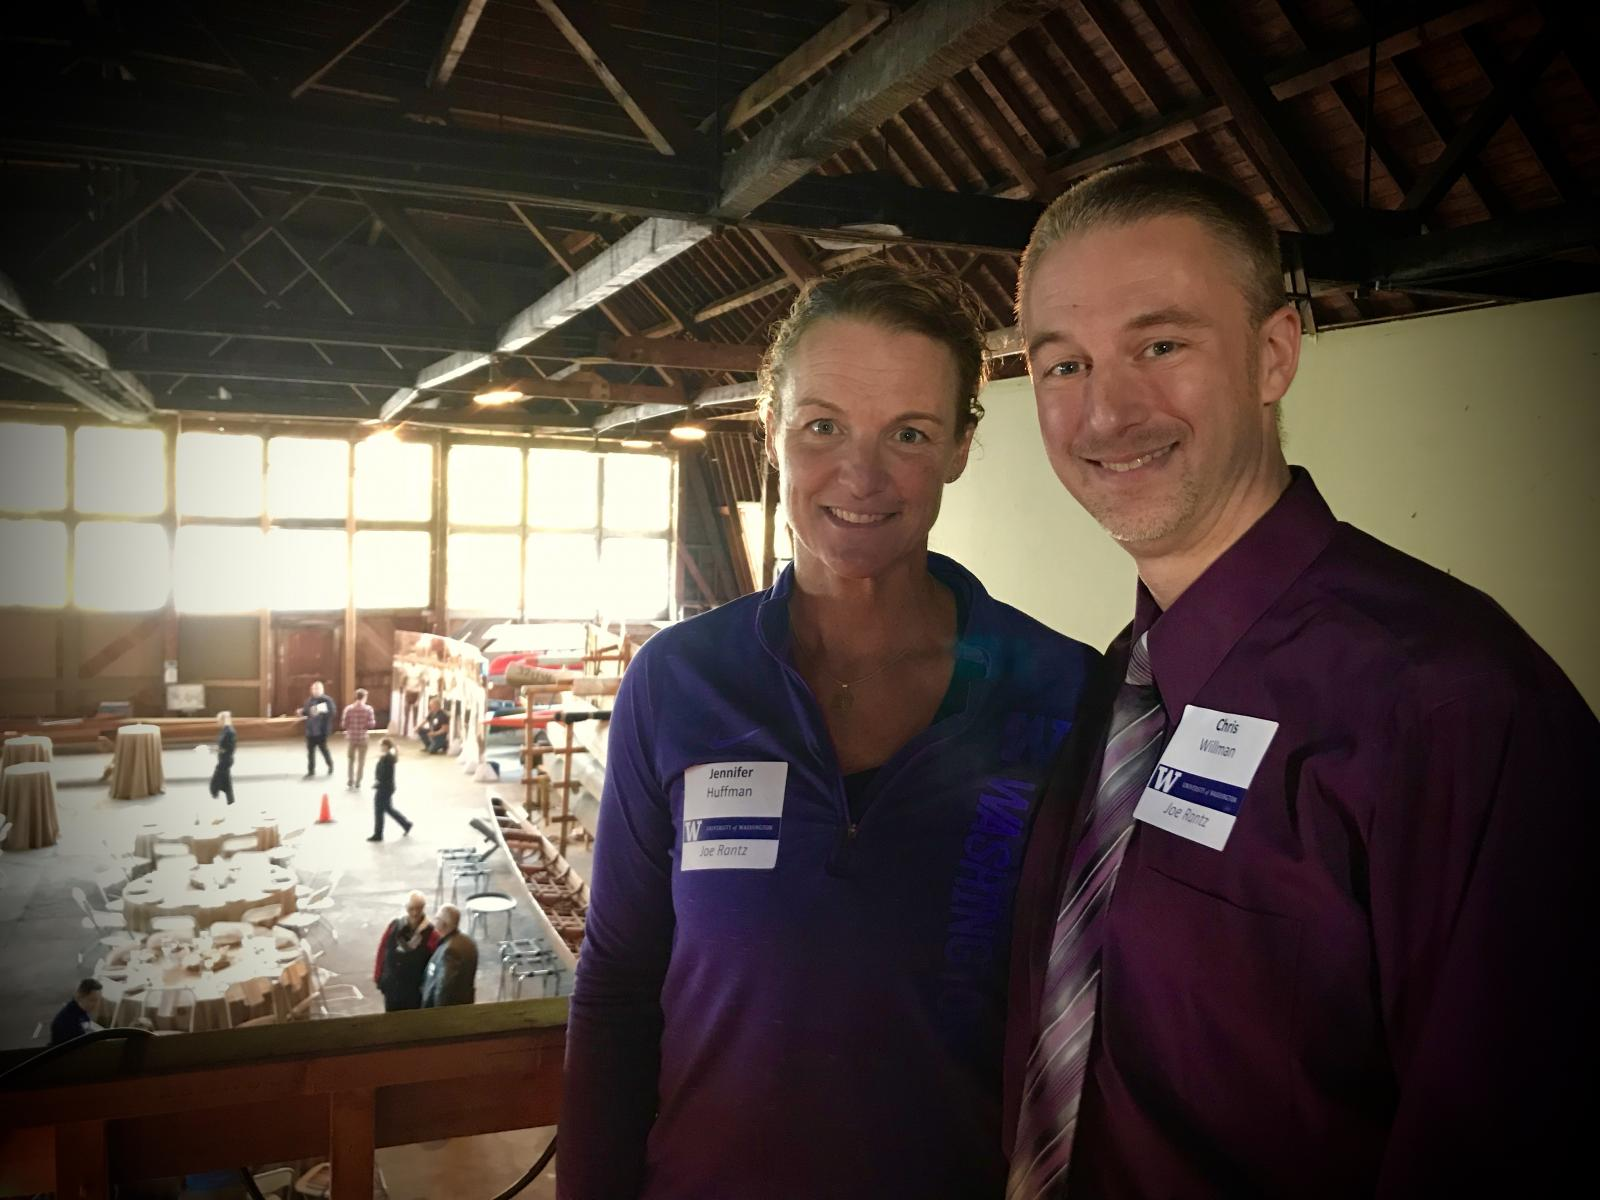 Jennifer Huffman and Chris Willman in the University of Washington crew boat house at the Boys of '36